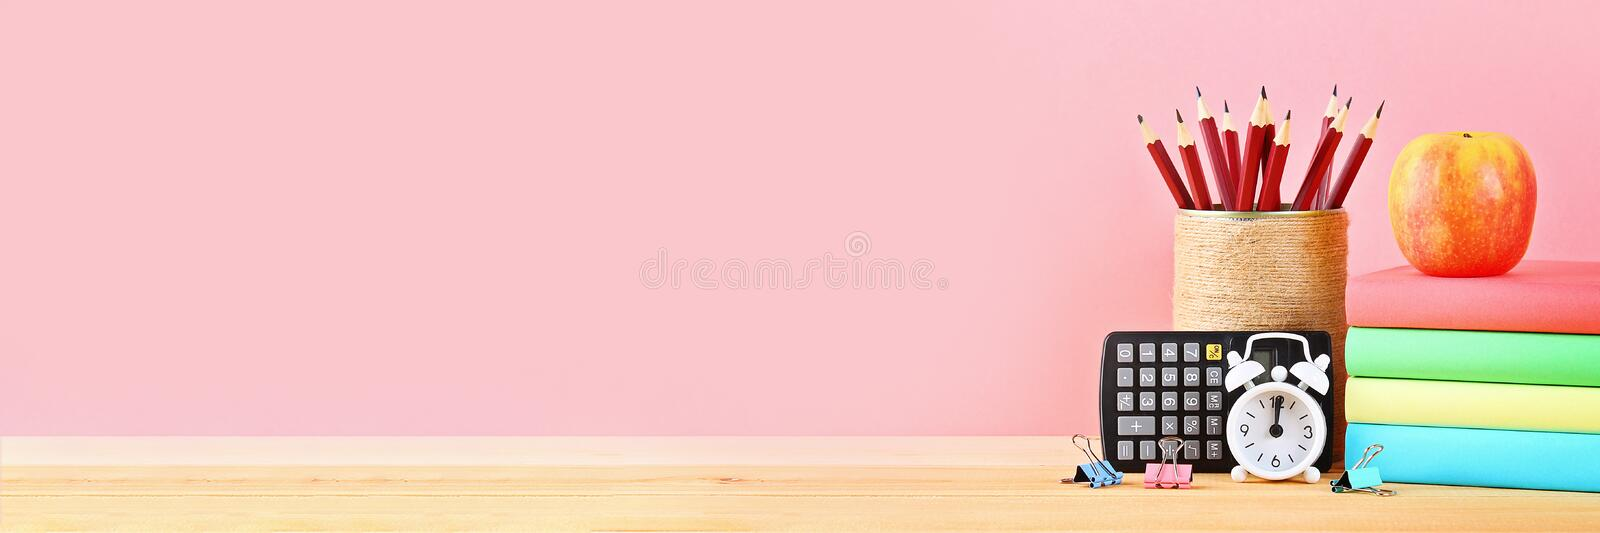 School and office supplies on a pink background. Back to school.  stock photography